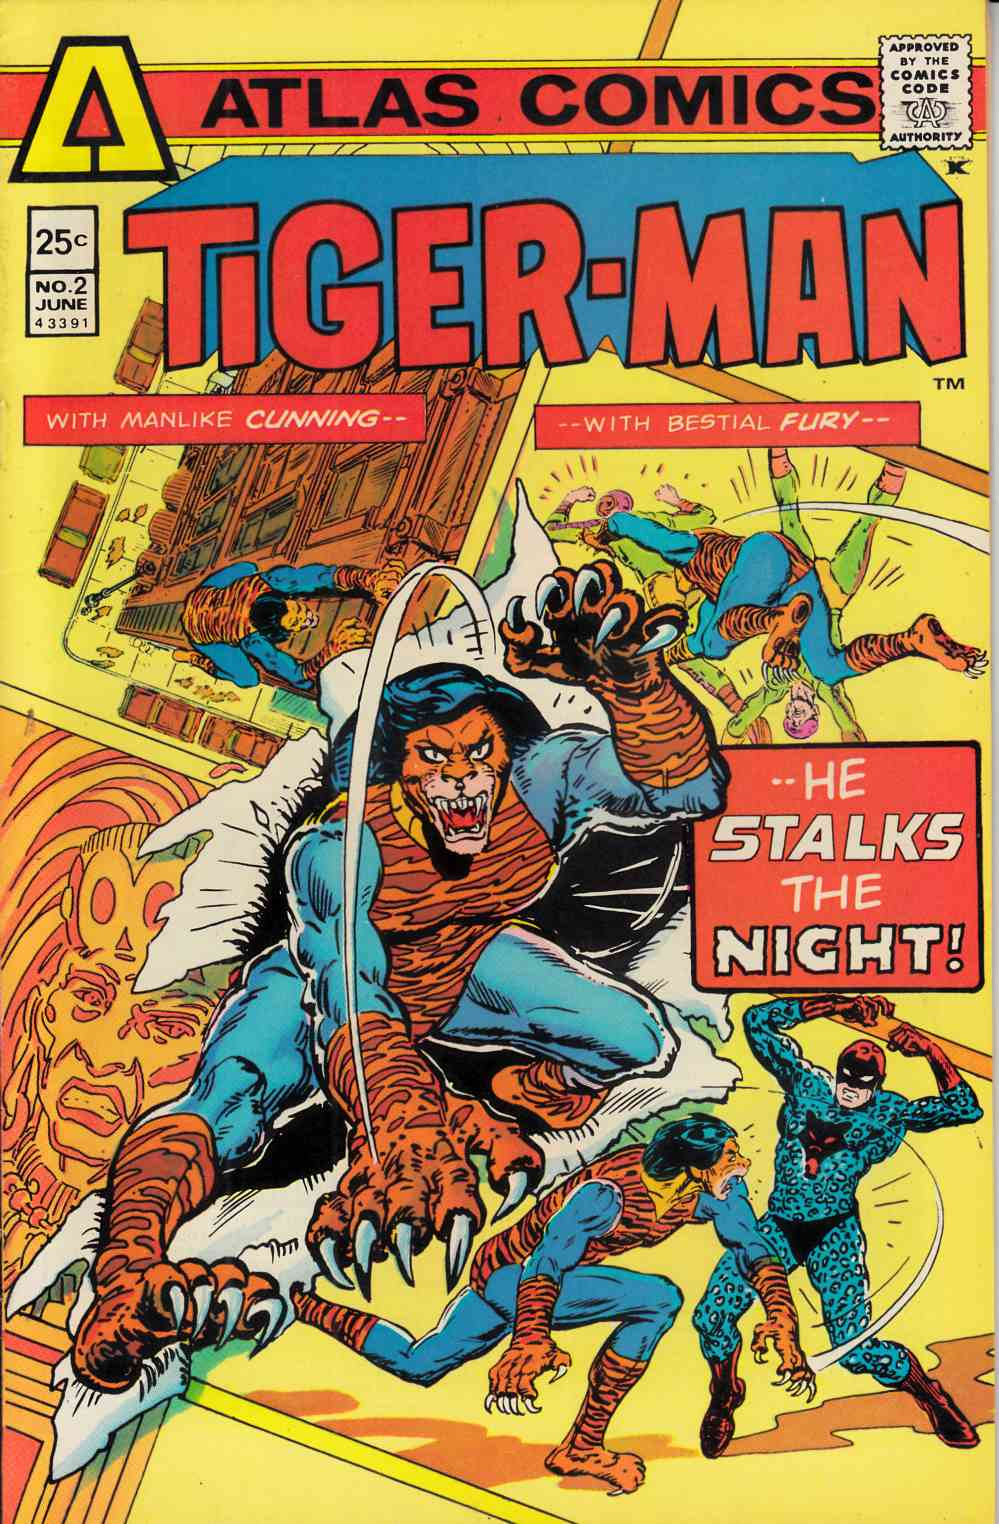 Tiger-Man #2 Very Fine/Near Mint (9.0) [Atlas Comic] THUMBNAIL